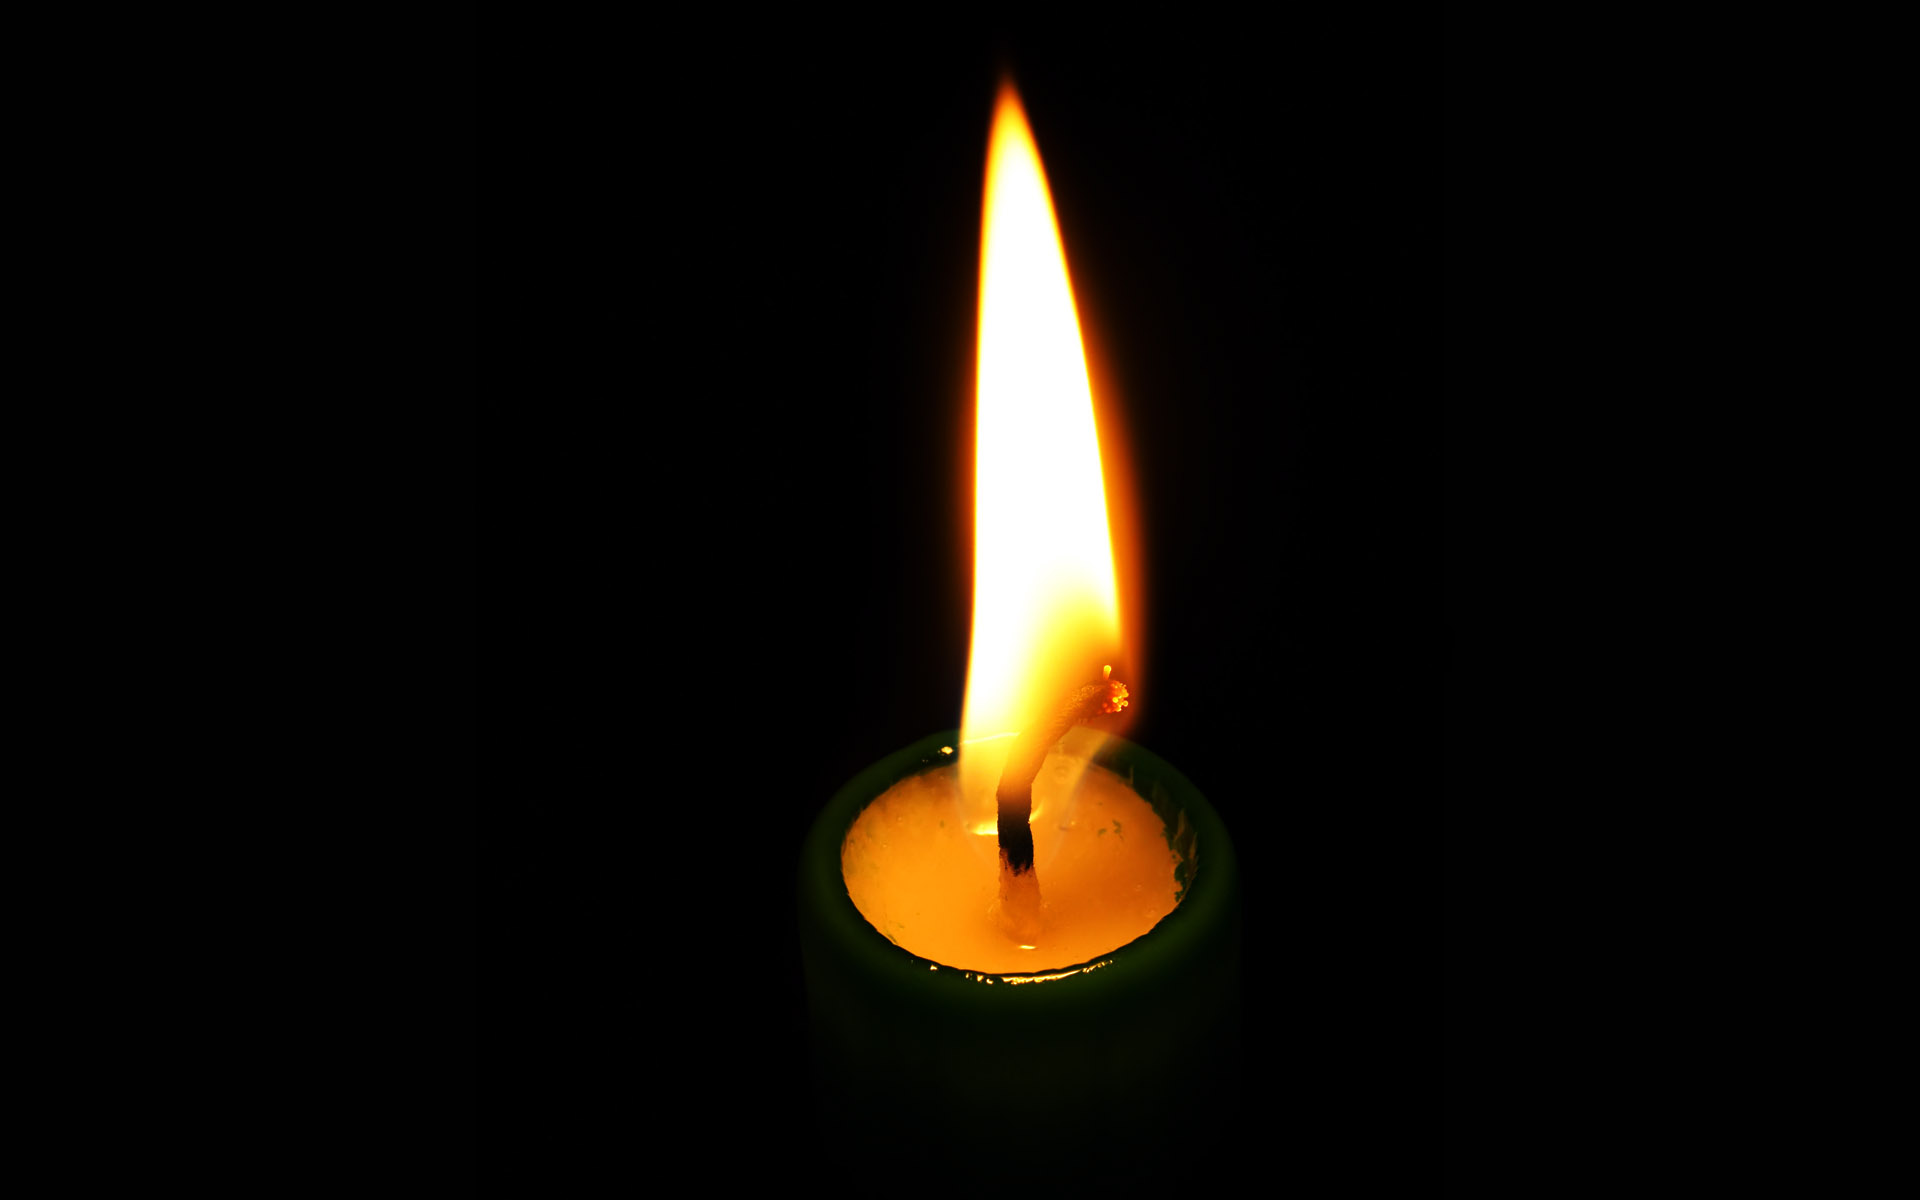 Candle wallpaper 5168